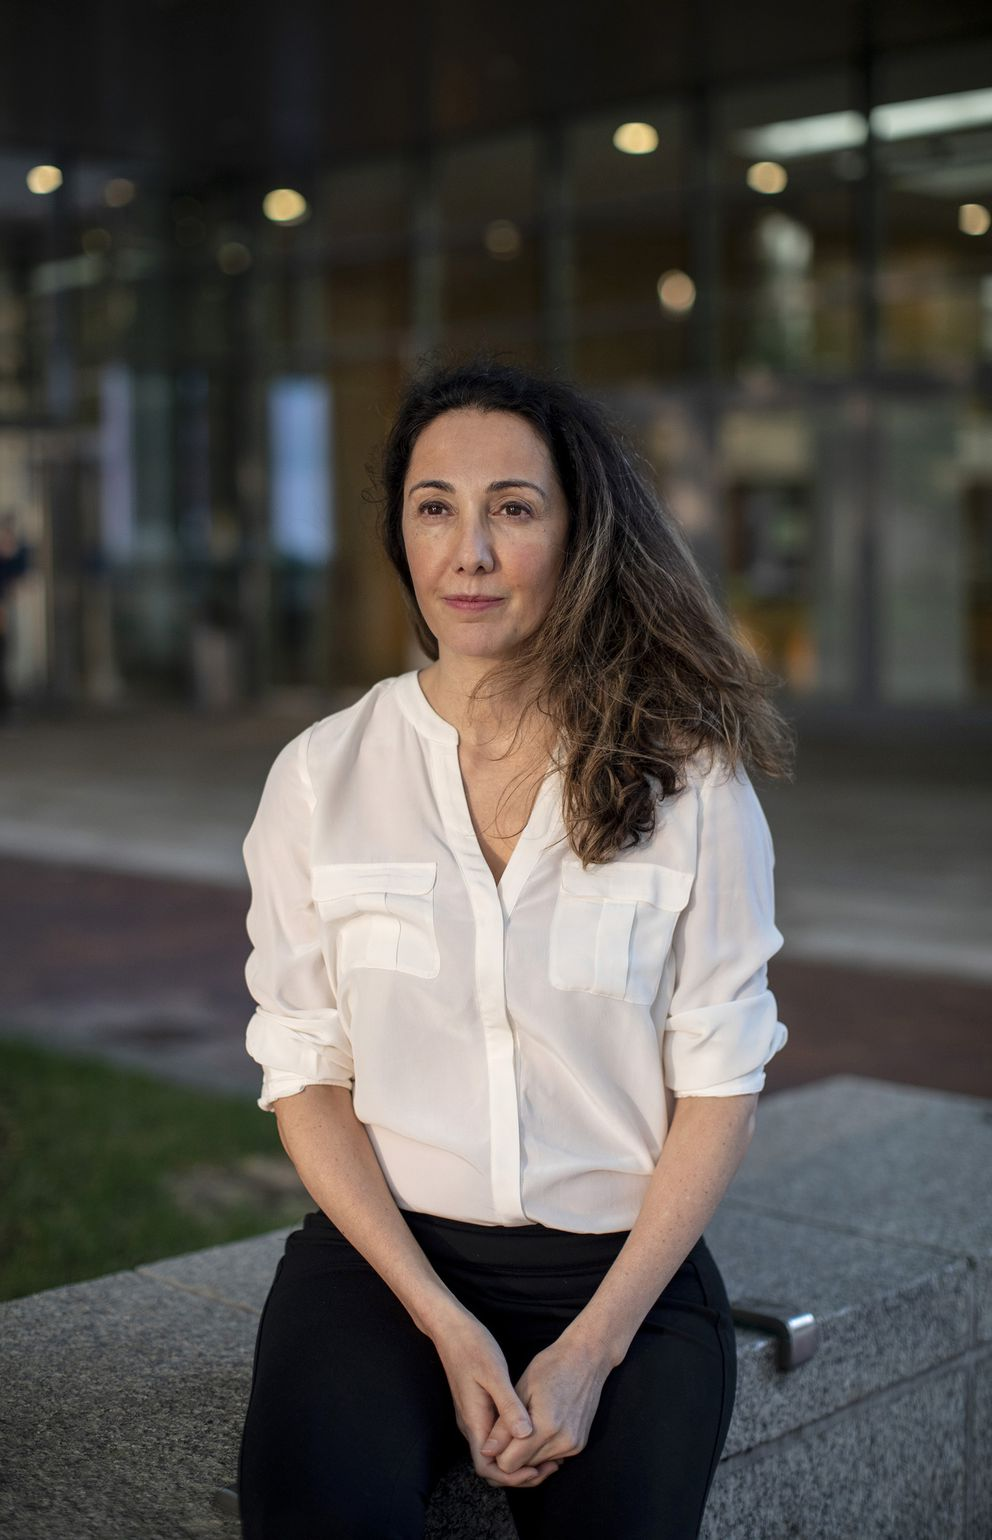 Pardis Sabeti is a computational geneticist who runs the Sabeti Lab, which uses genomics to study how diseases and humans evolve and adapt. (Photo for The Washington Post by Brianna Soukup)